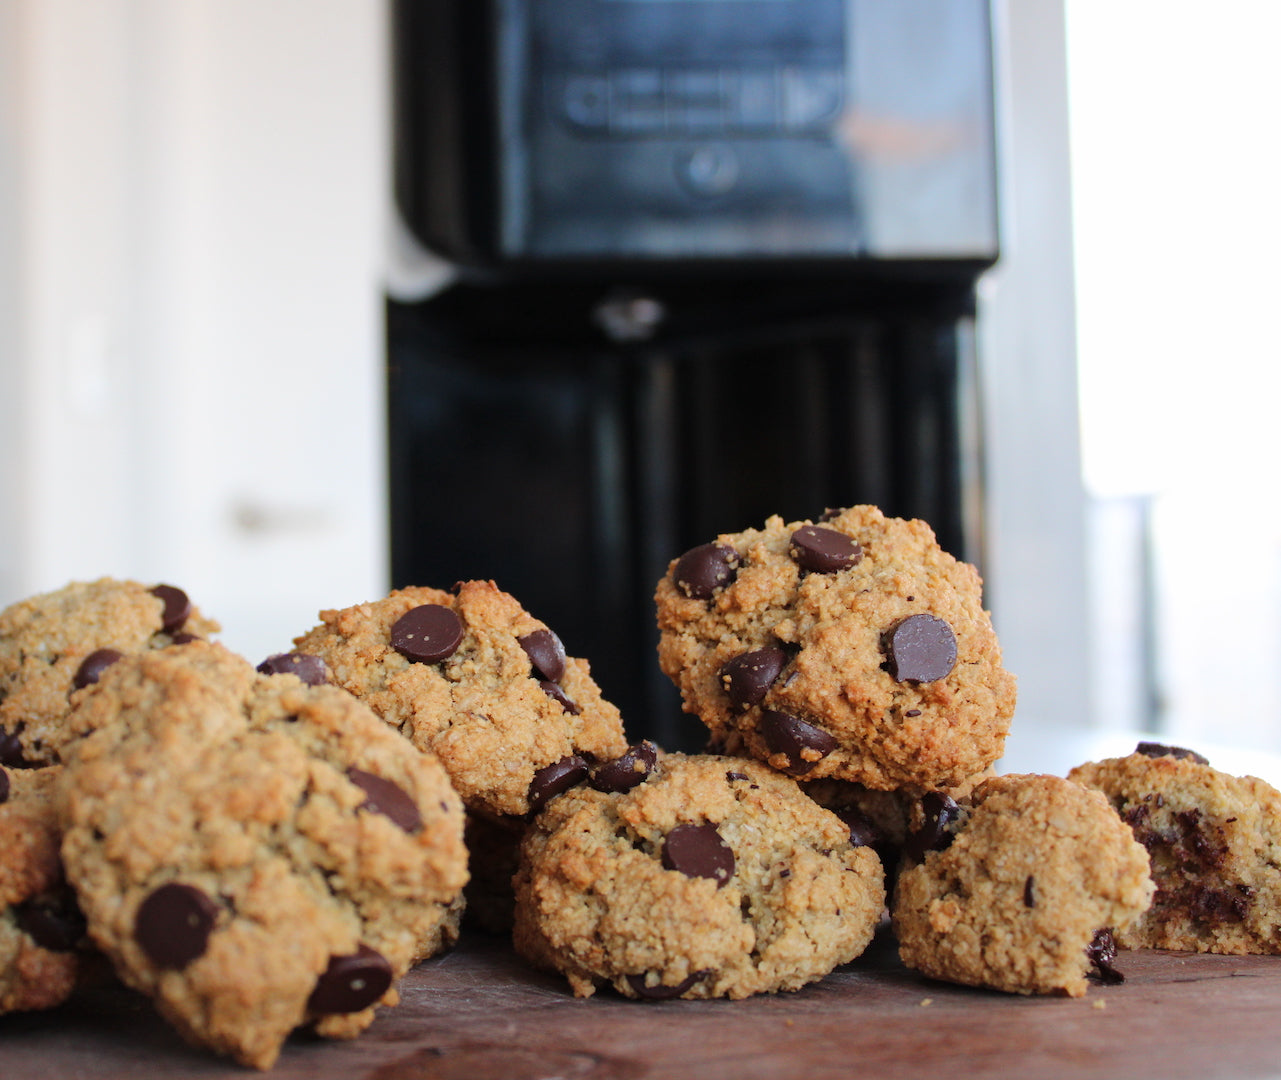 Image of father's day desserts option 5: infused oatmeal chocolate cookies.